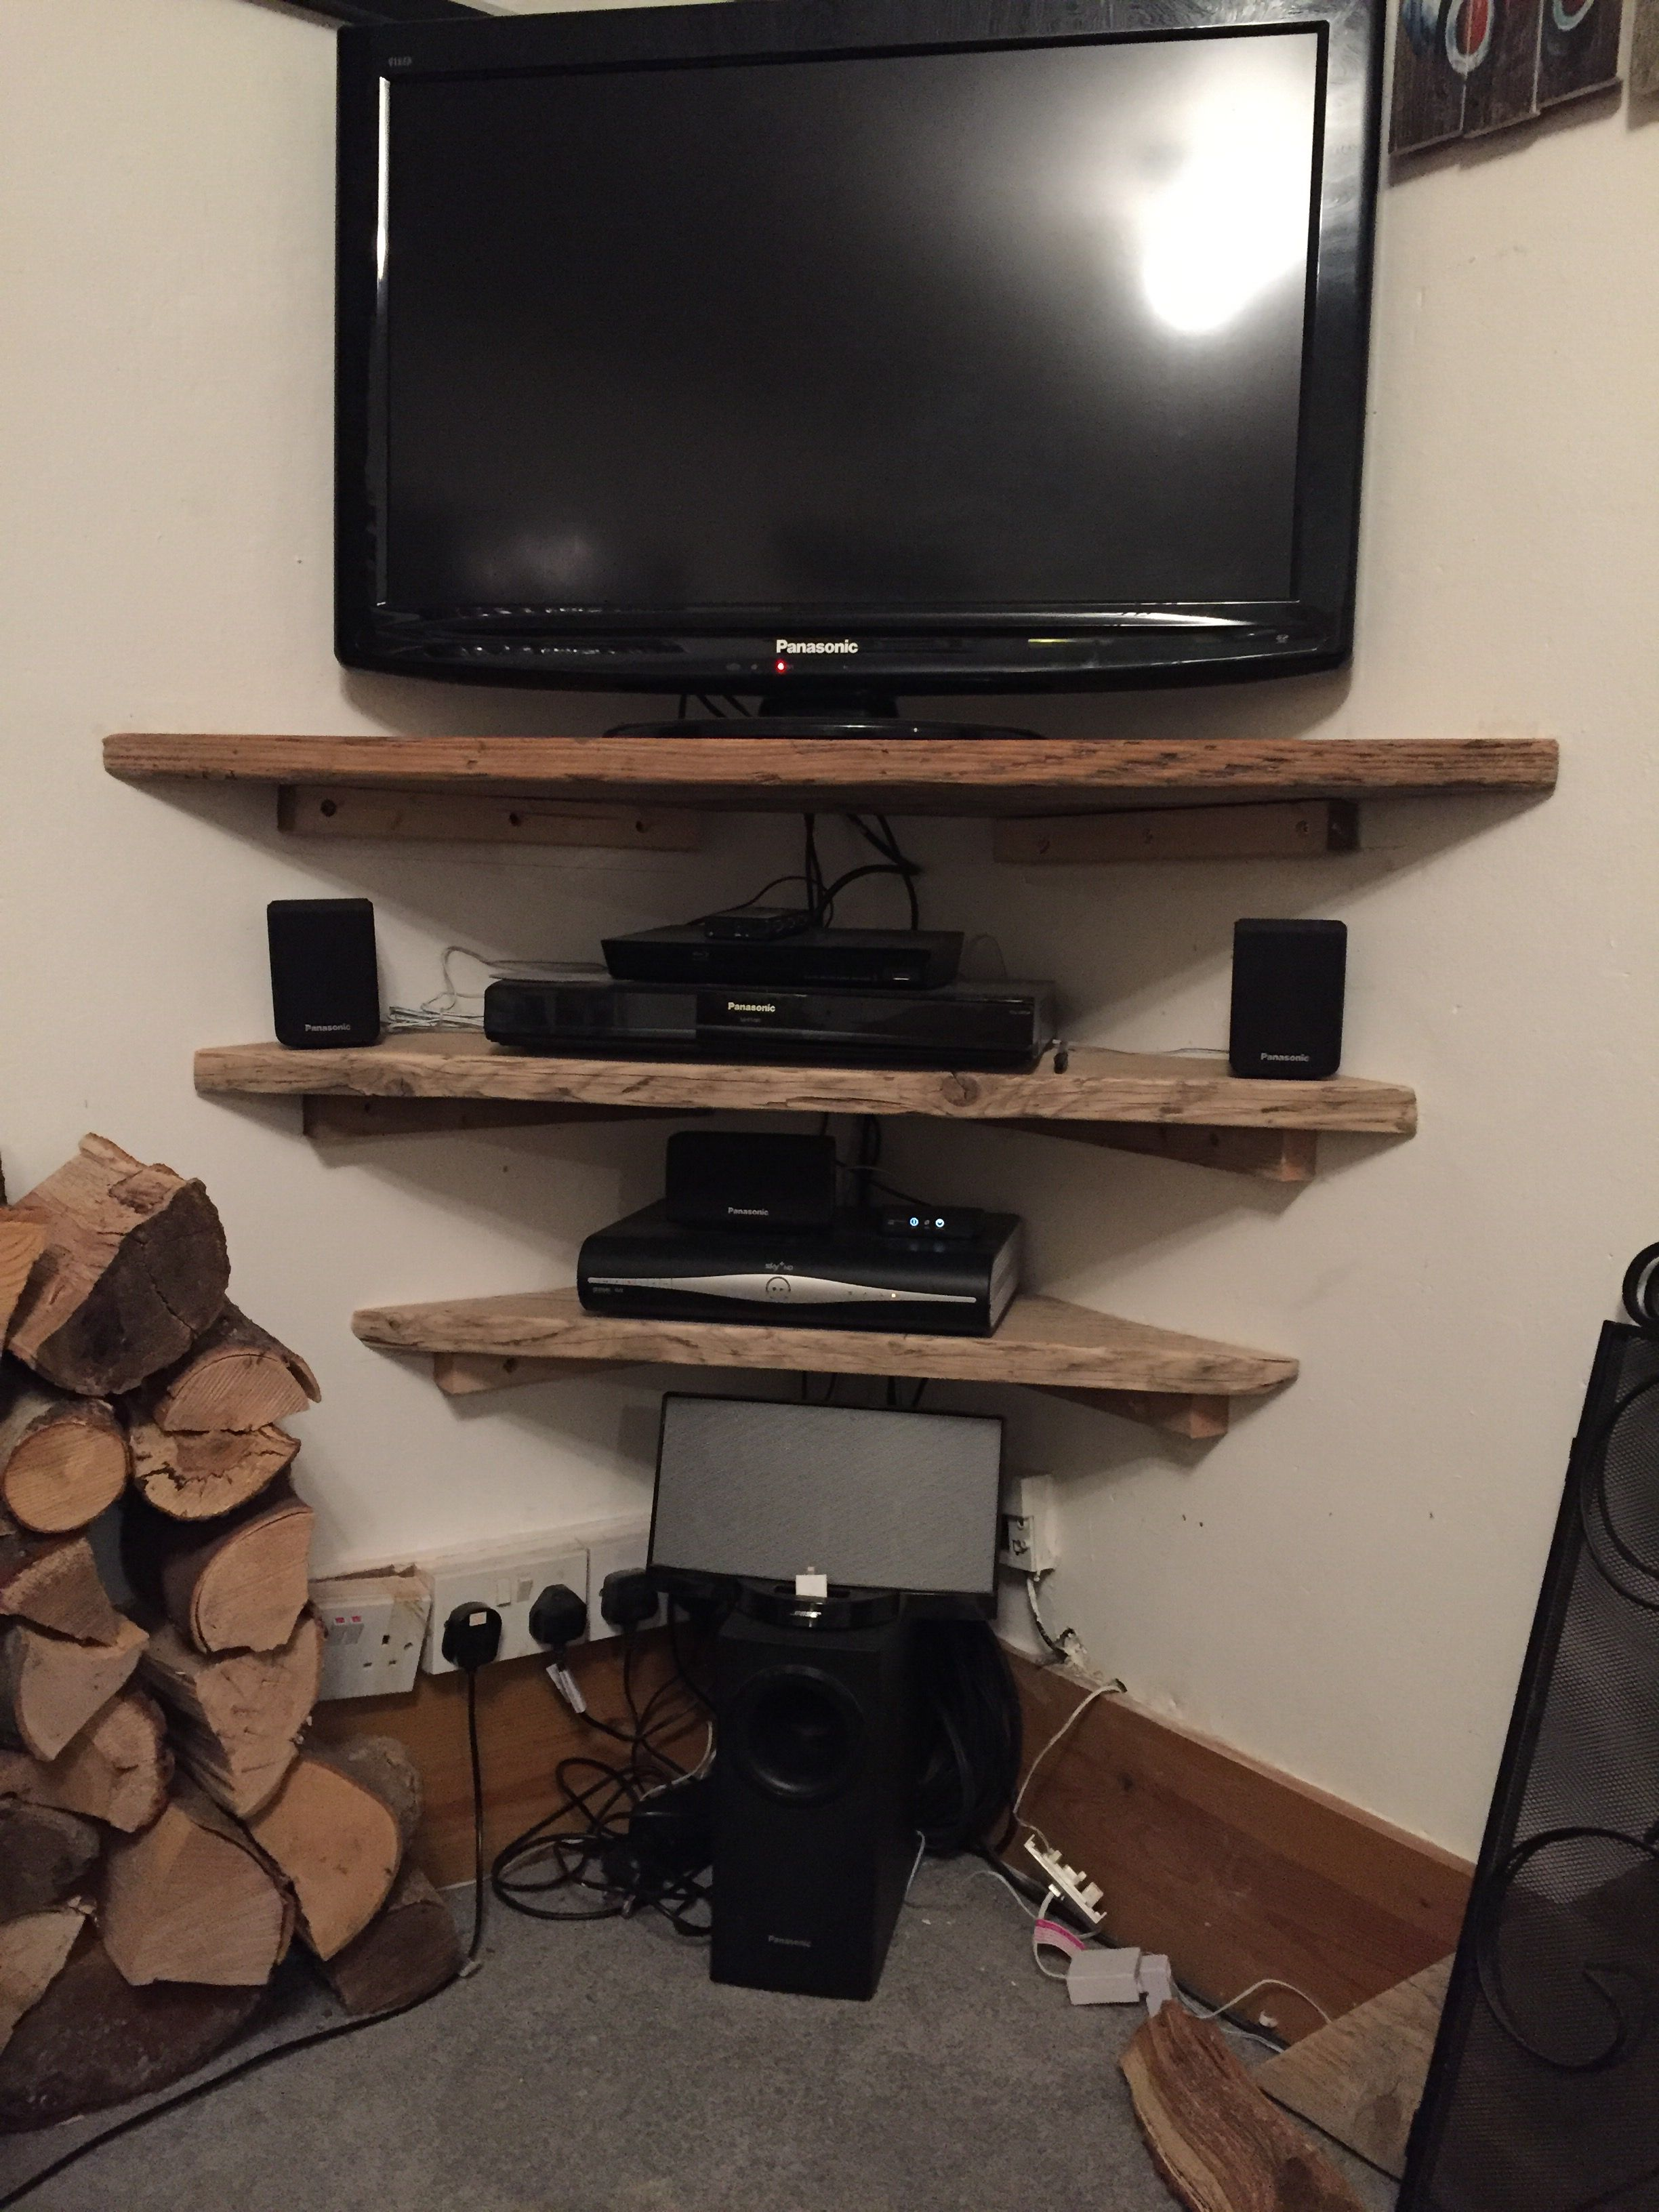 Television Shelves Finished Using Old Scaffold Boards Sanded And